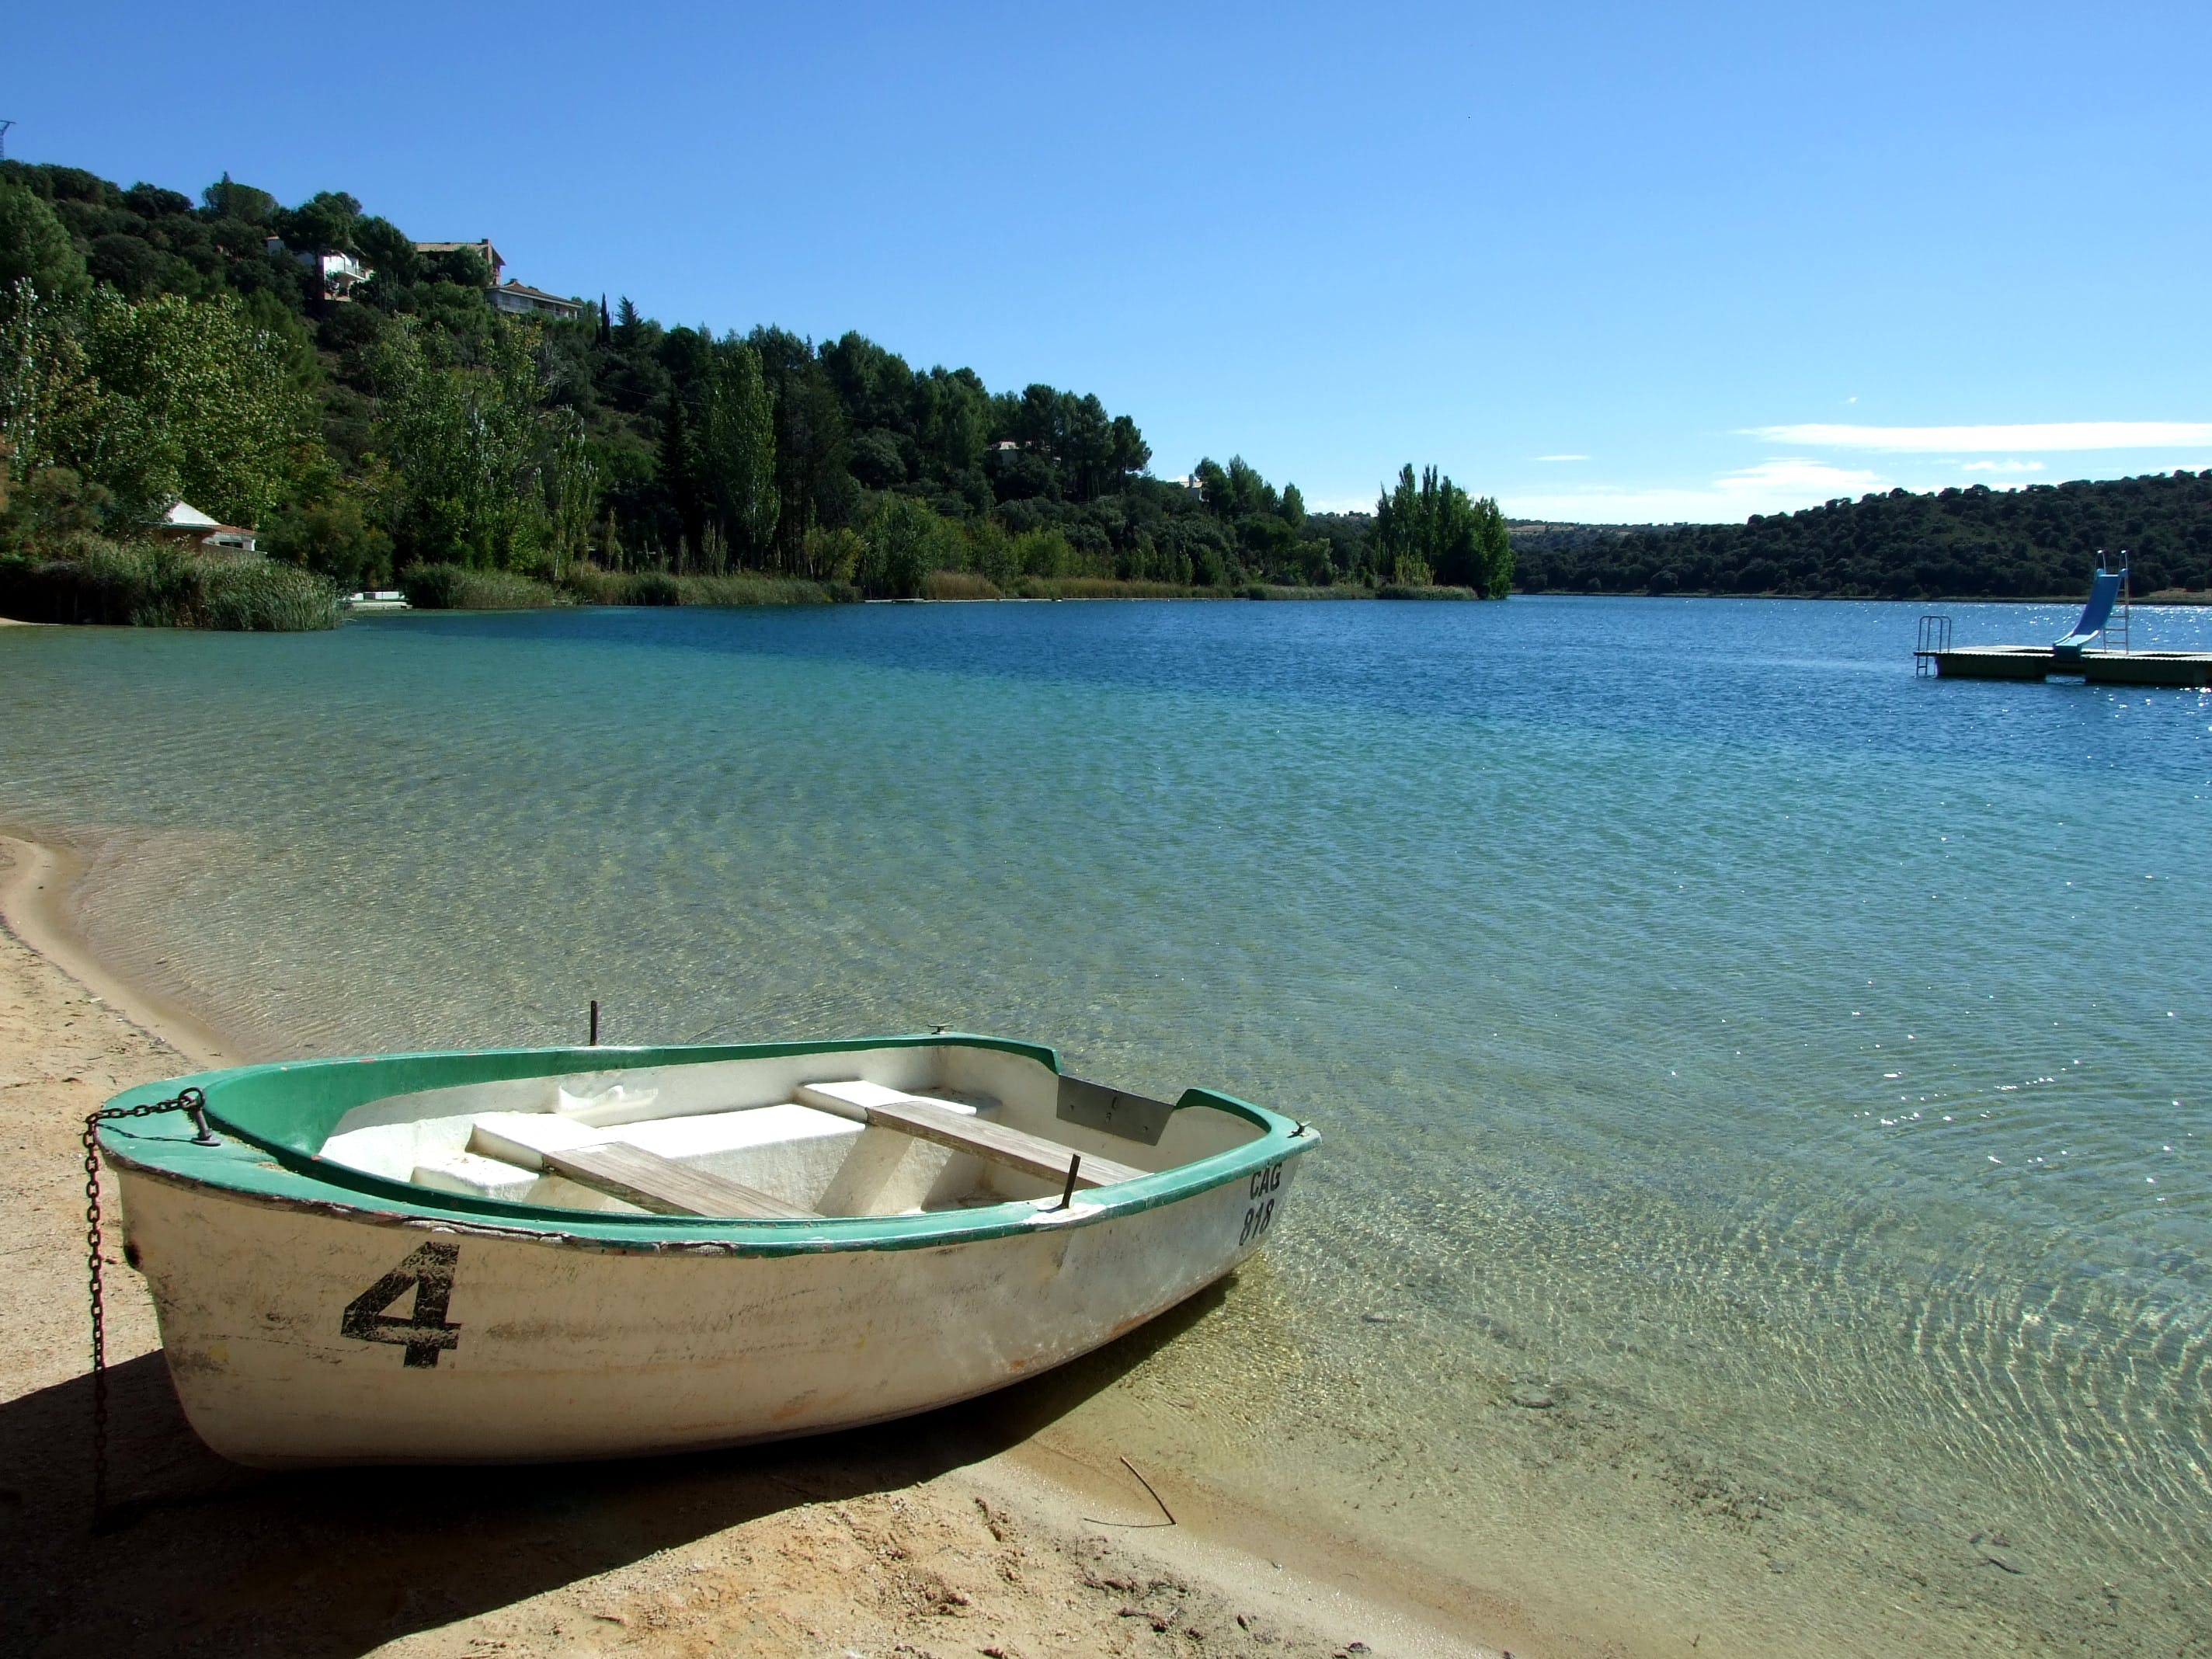 Free stock photo of sand, water, boat, trees